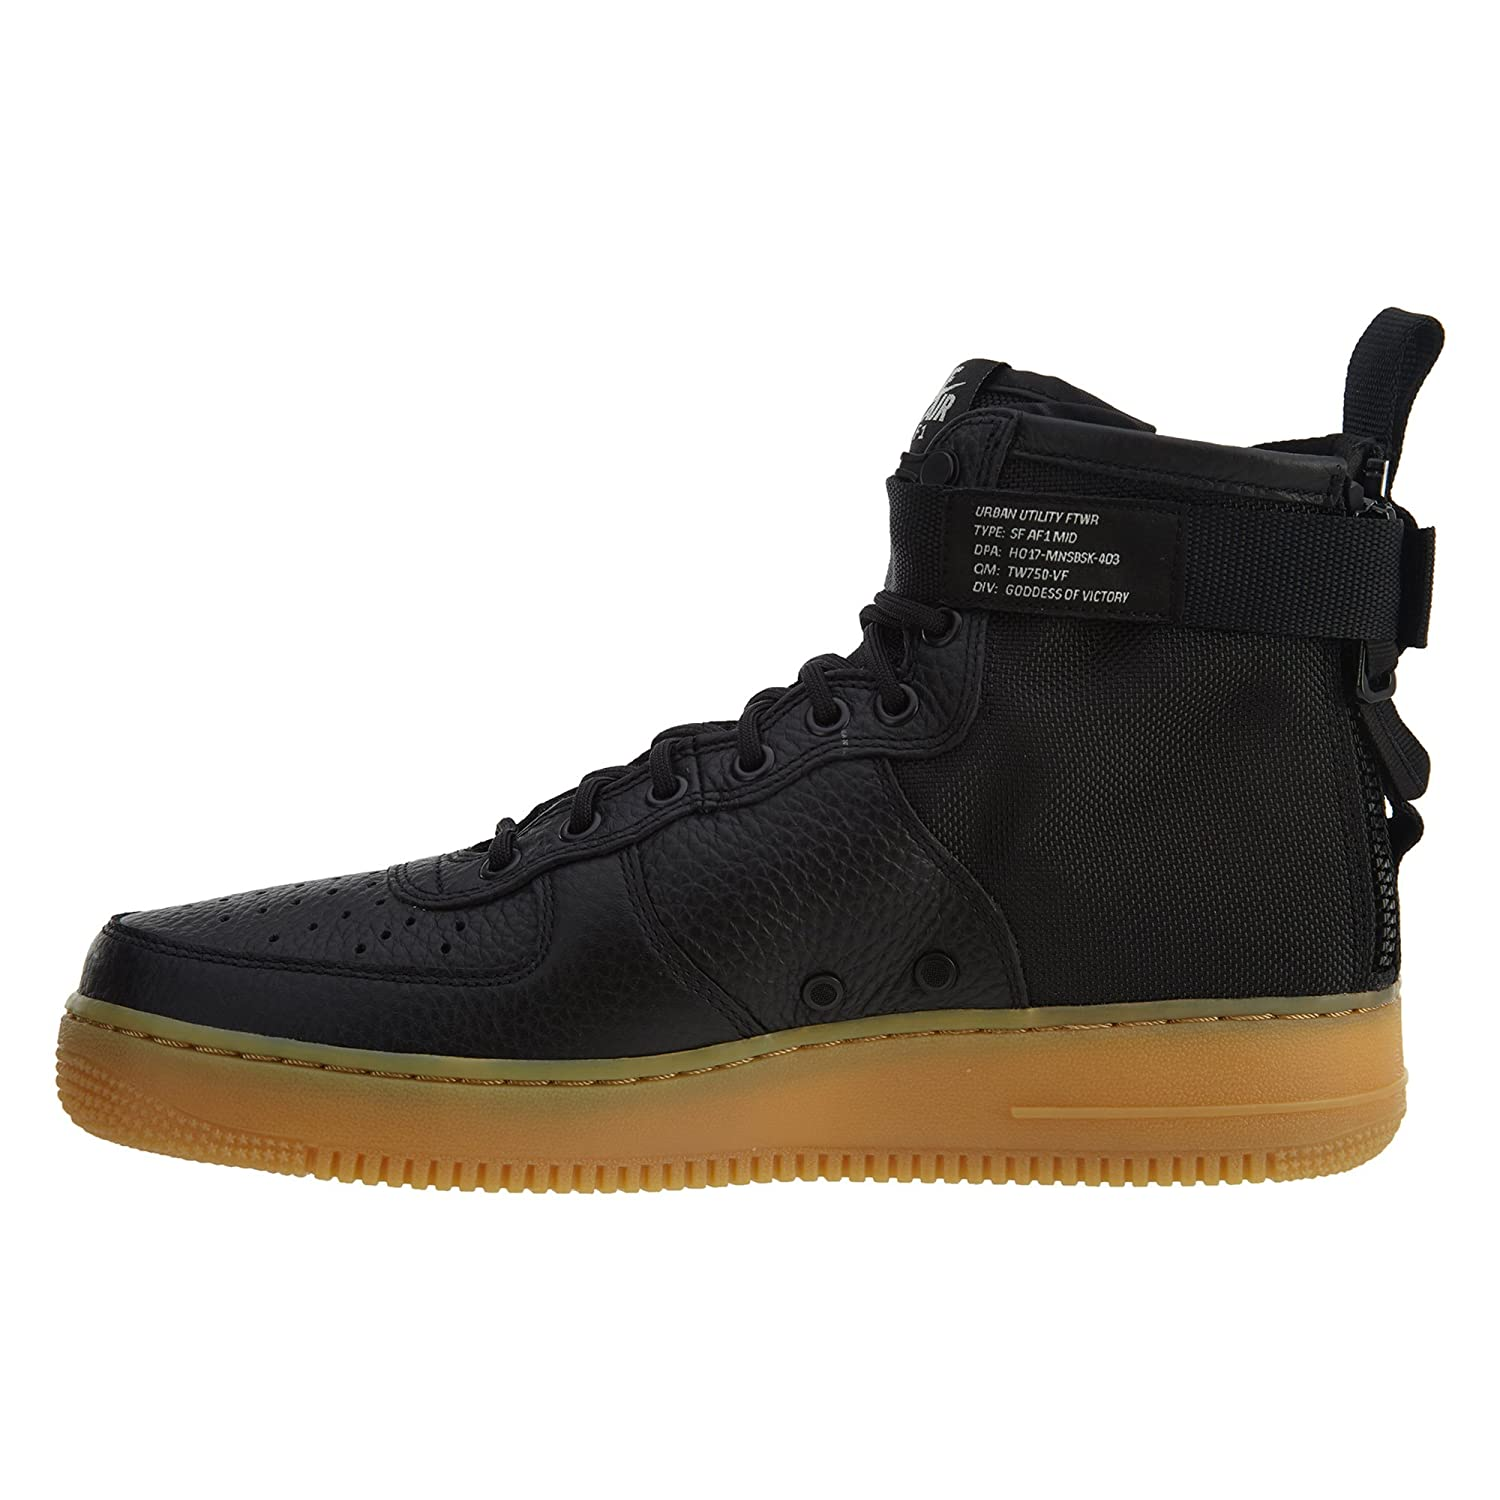 Tenis Nike SF AF1 Mid de básquetbol para hombre, Black Black gum Light Brown, 8 US